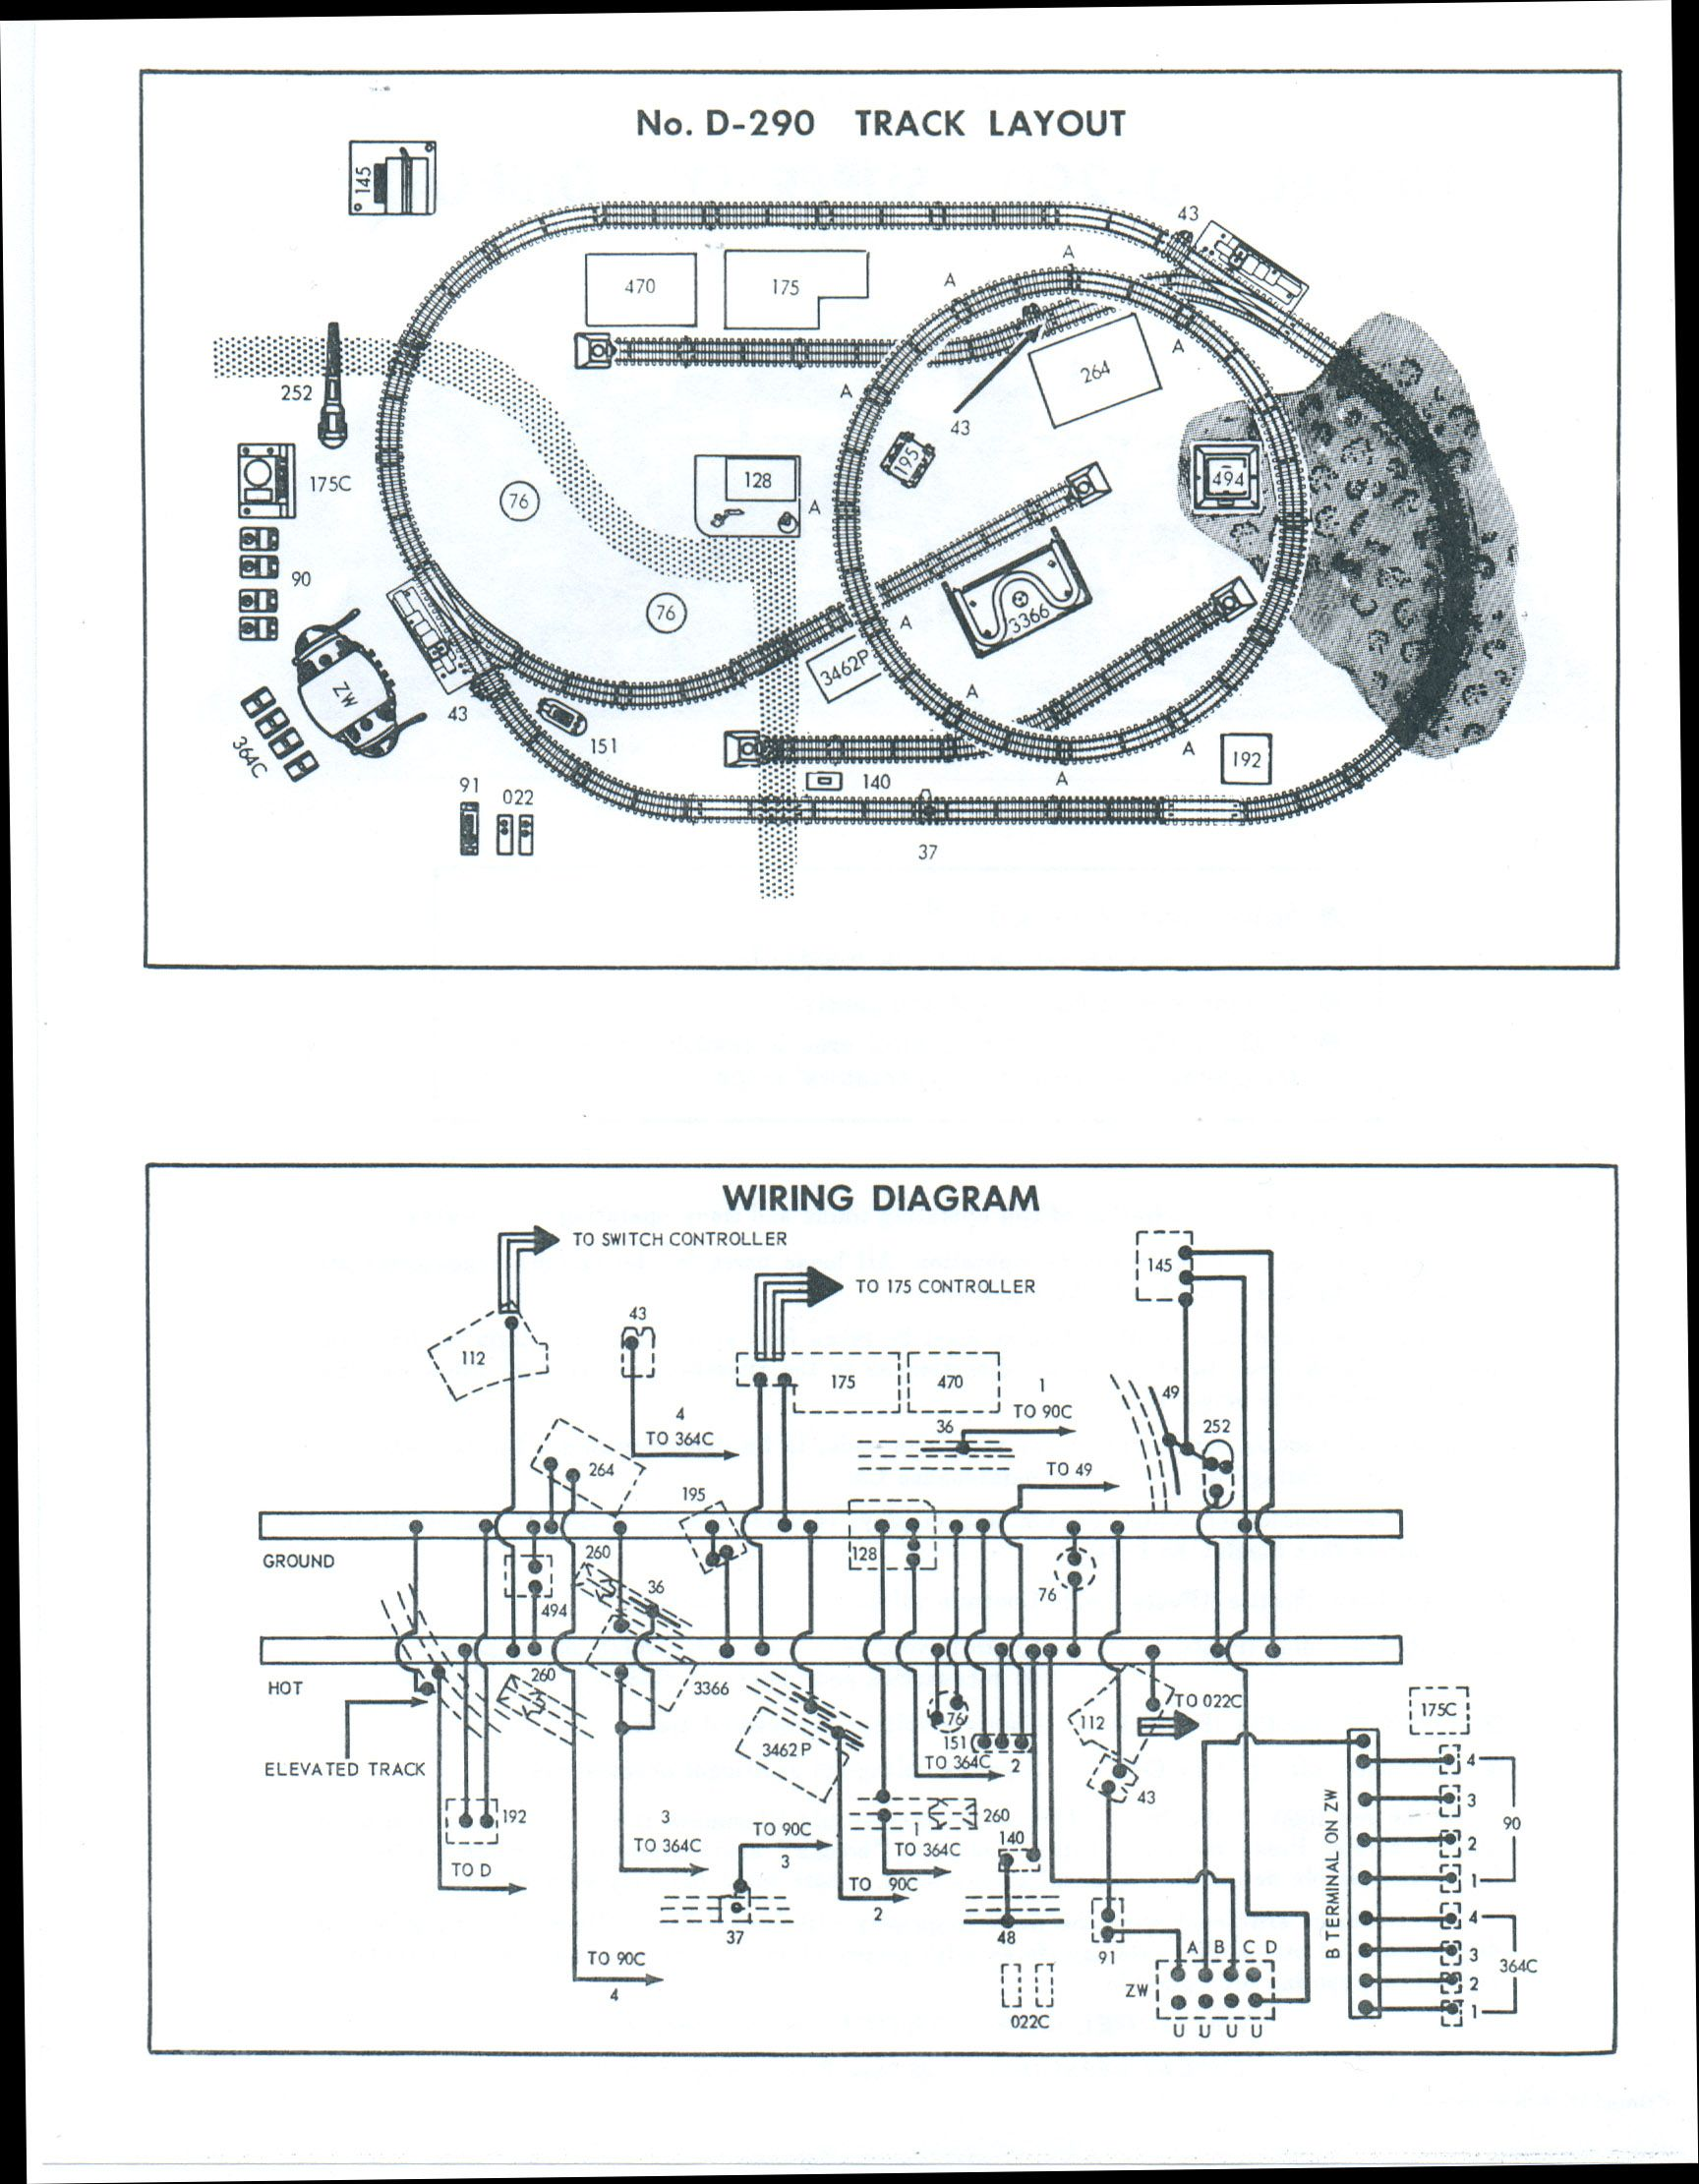 D290 Dealer Track Wiring Diagram Lionel Trains Pinterest